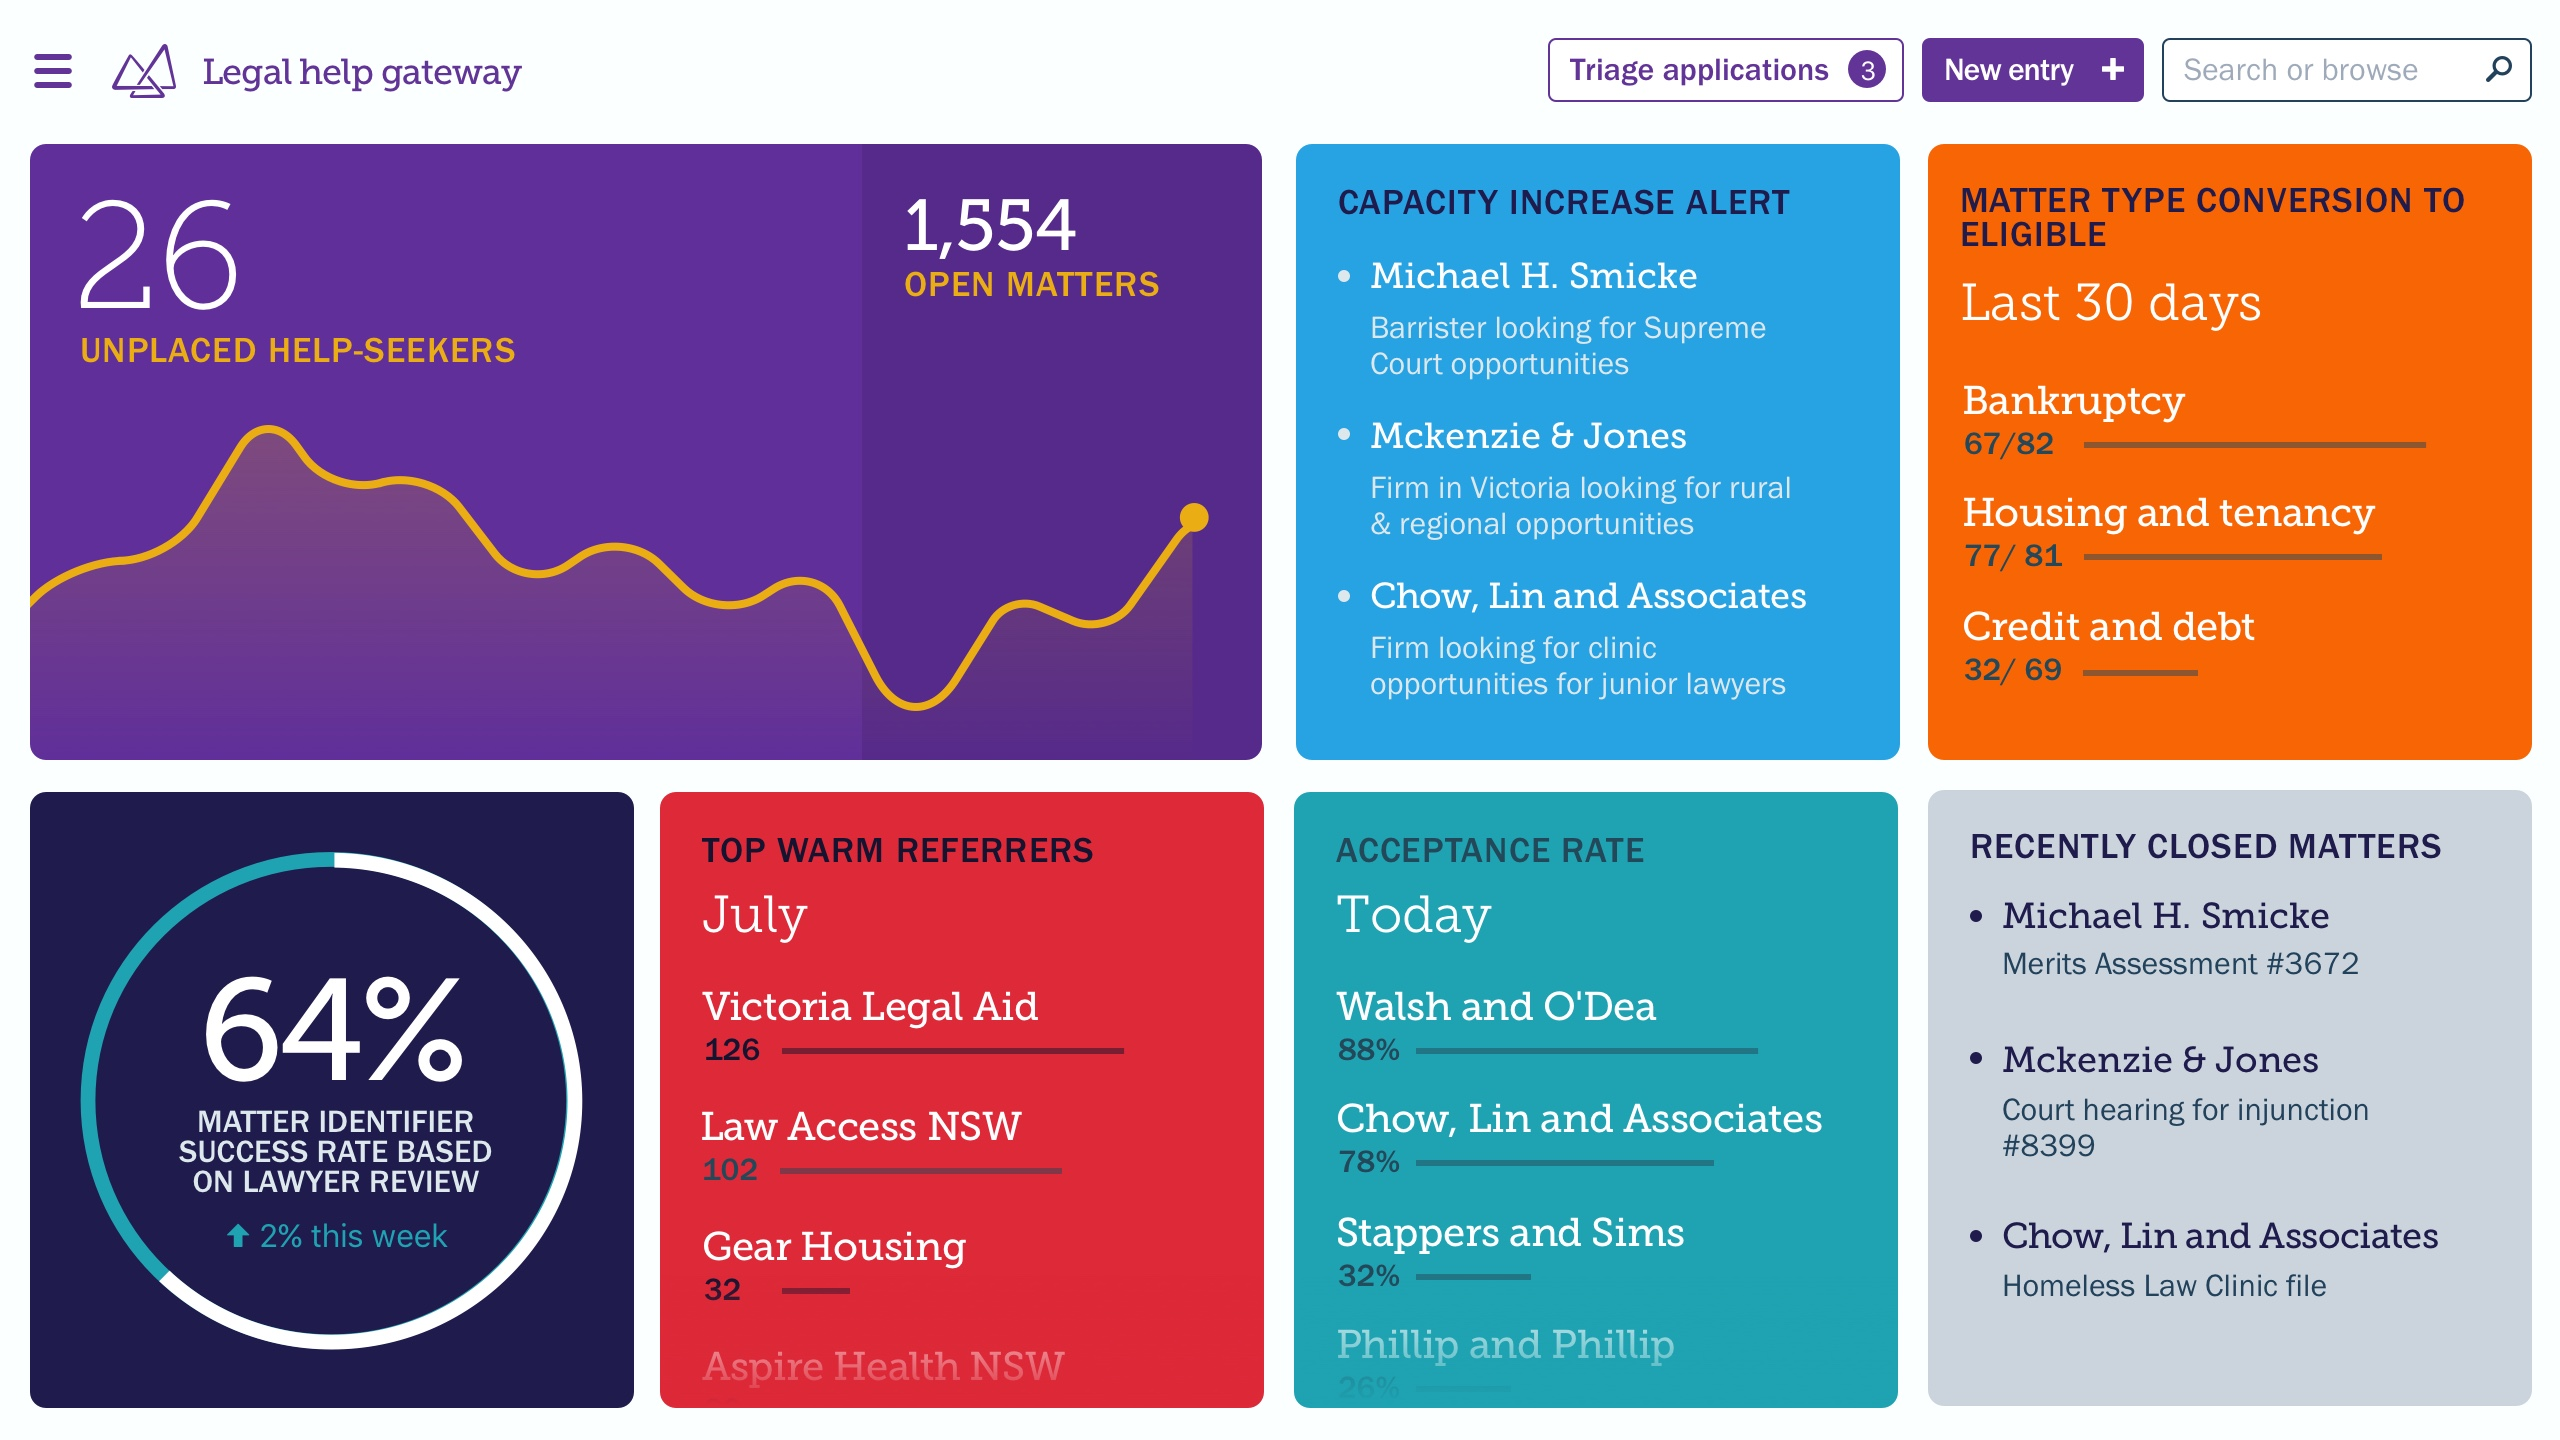 A dashboard mock-up showing what data from the legal help gateway could look like.